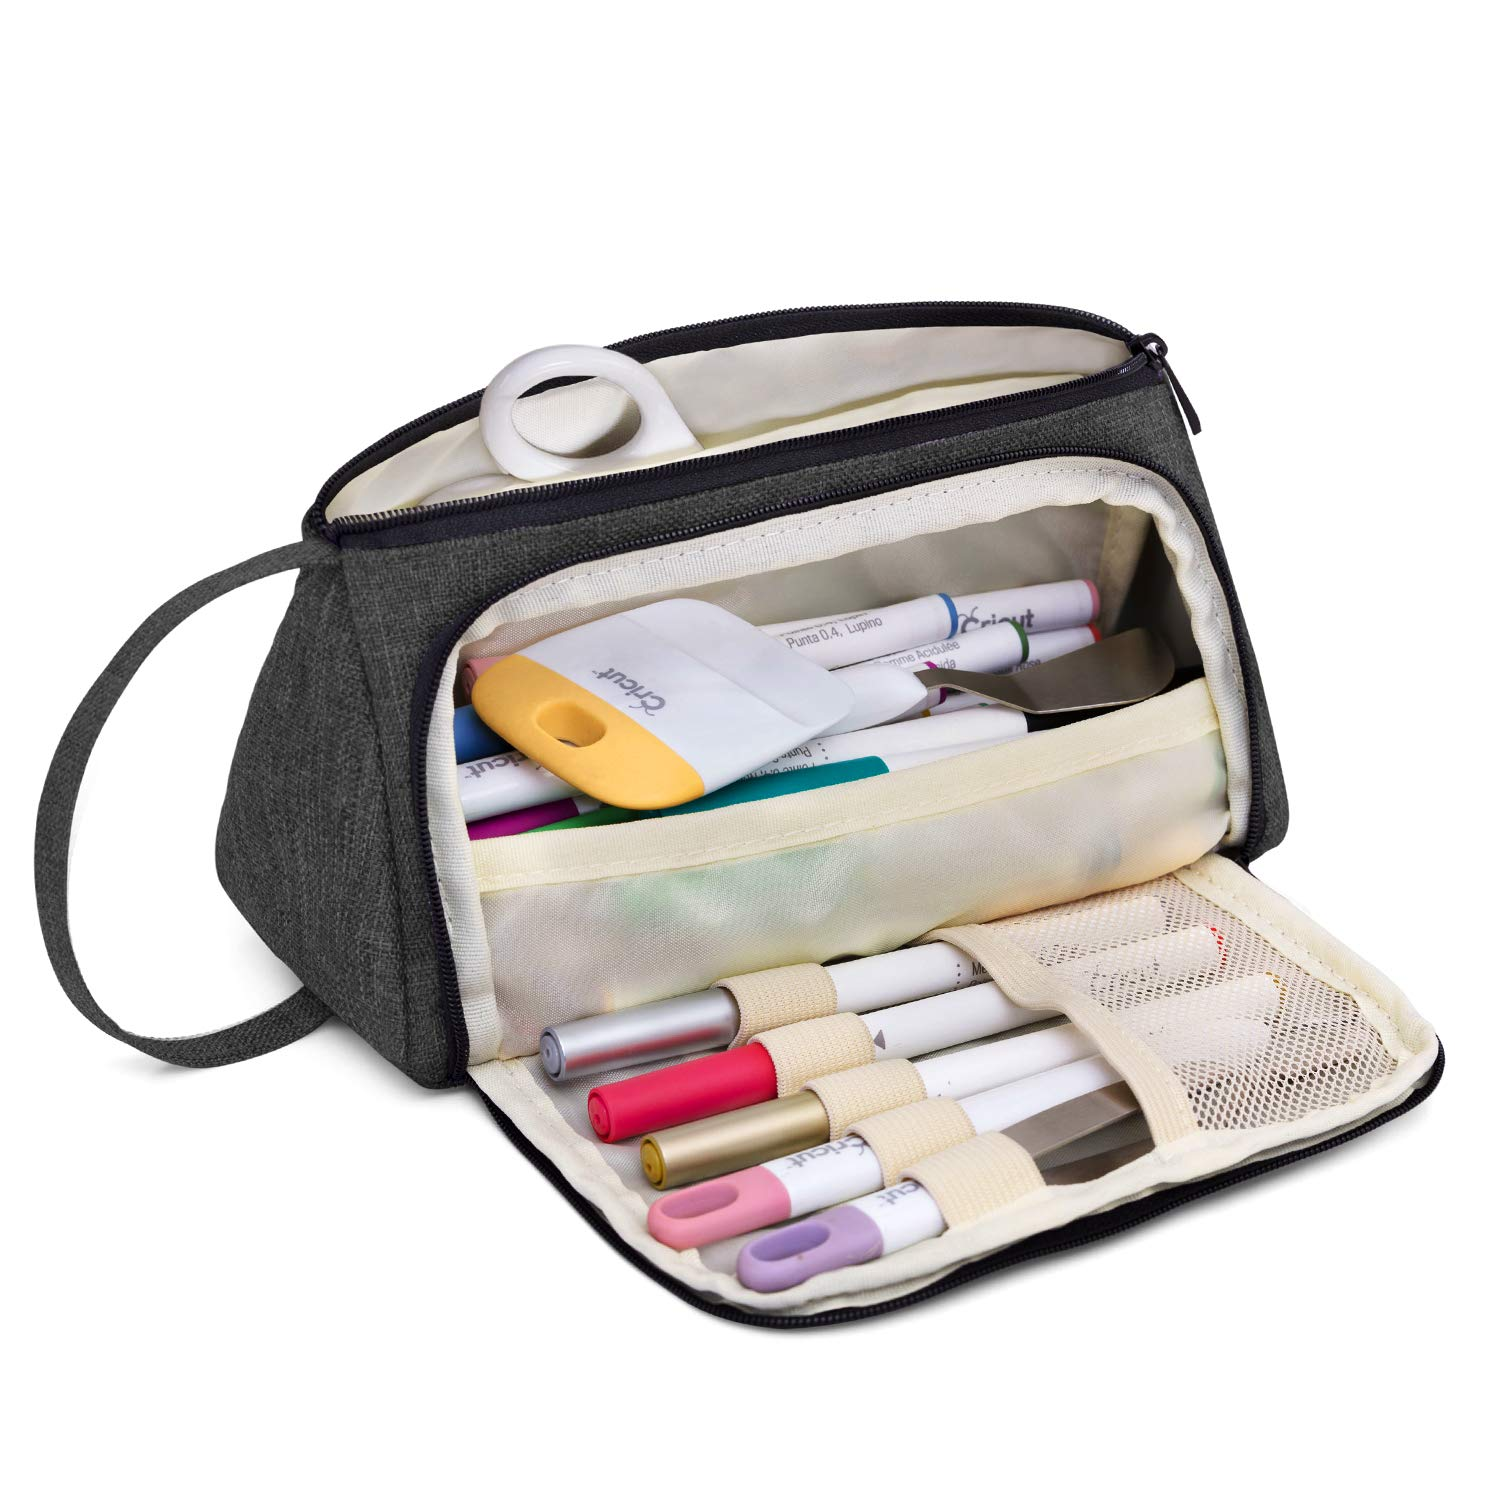 Luxja Bag for Cricut Pen Set and Basic Tools, Carrying Case for Cricut Accessories (Bag Only), Black